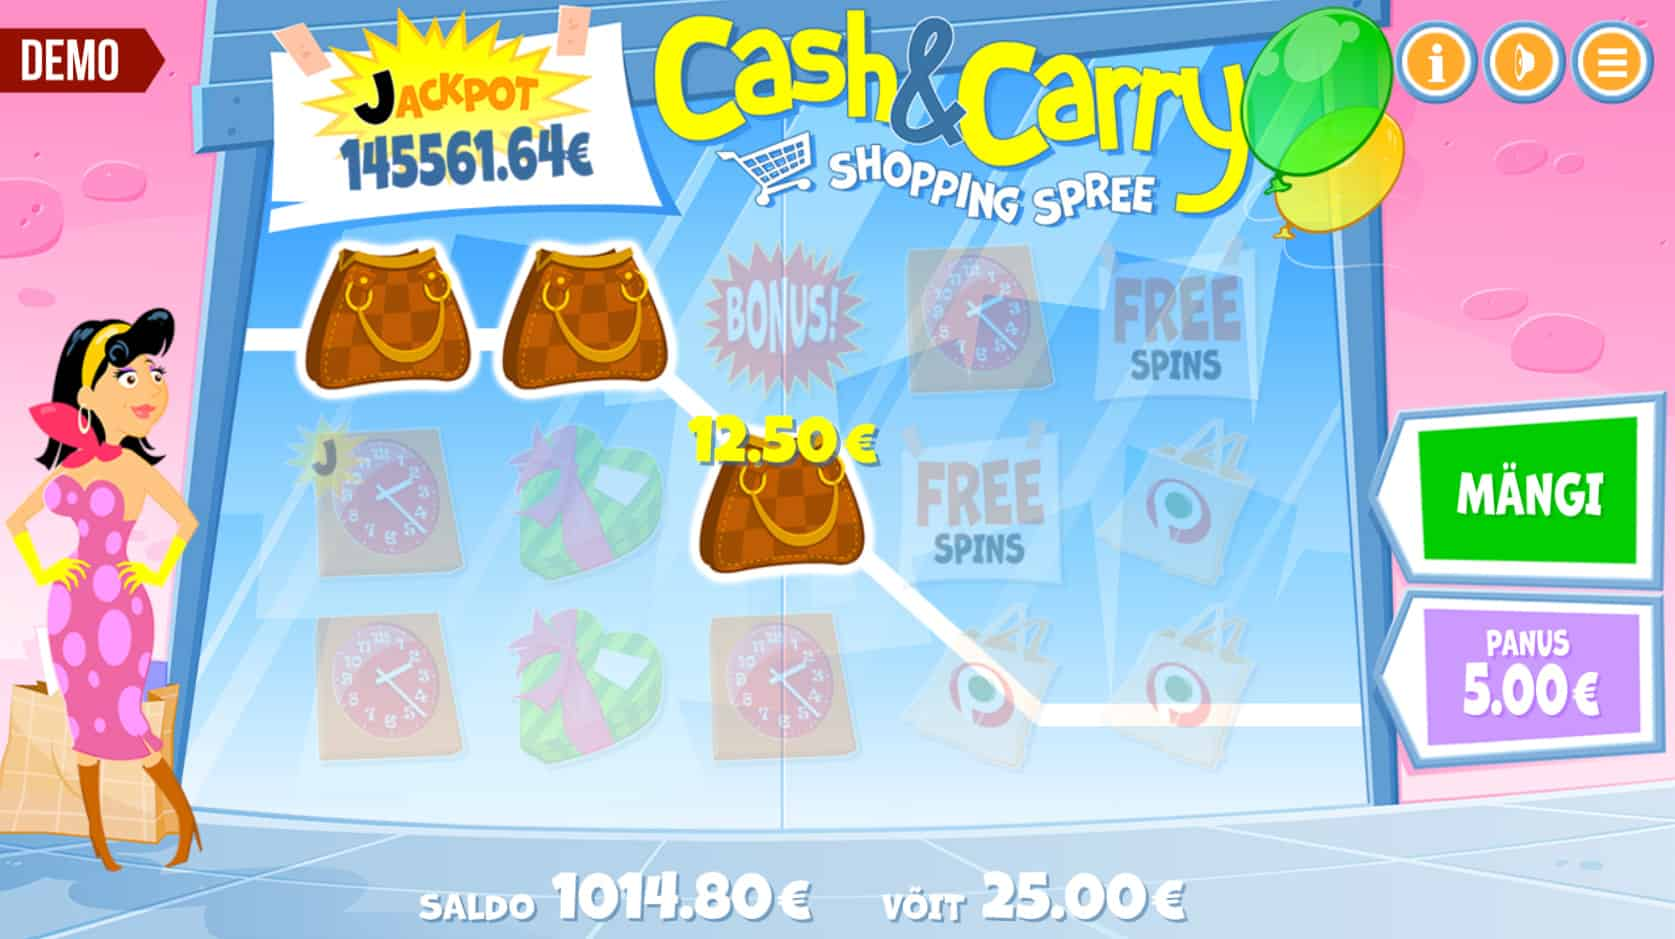 Cash & Carry Shopping Spree